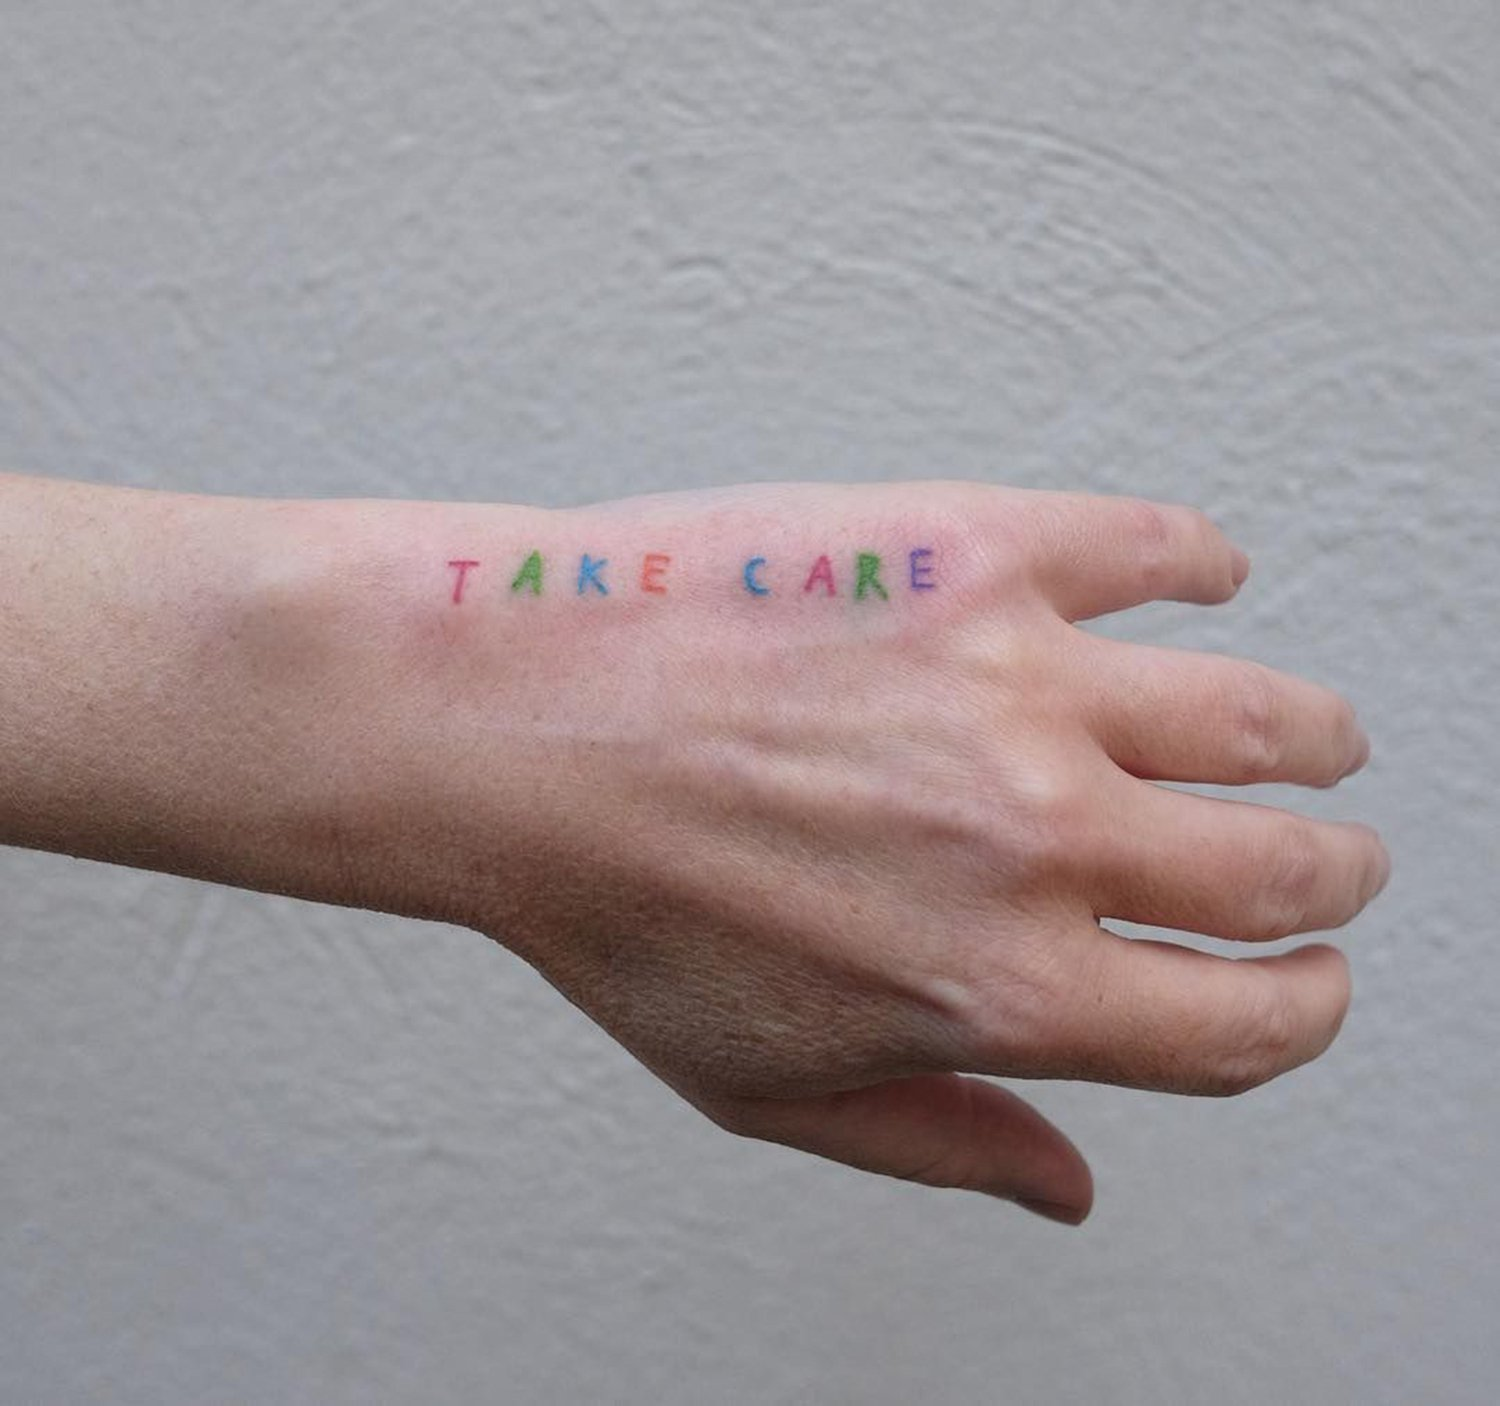 take care, type tattoo on hand